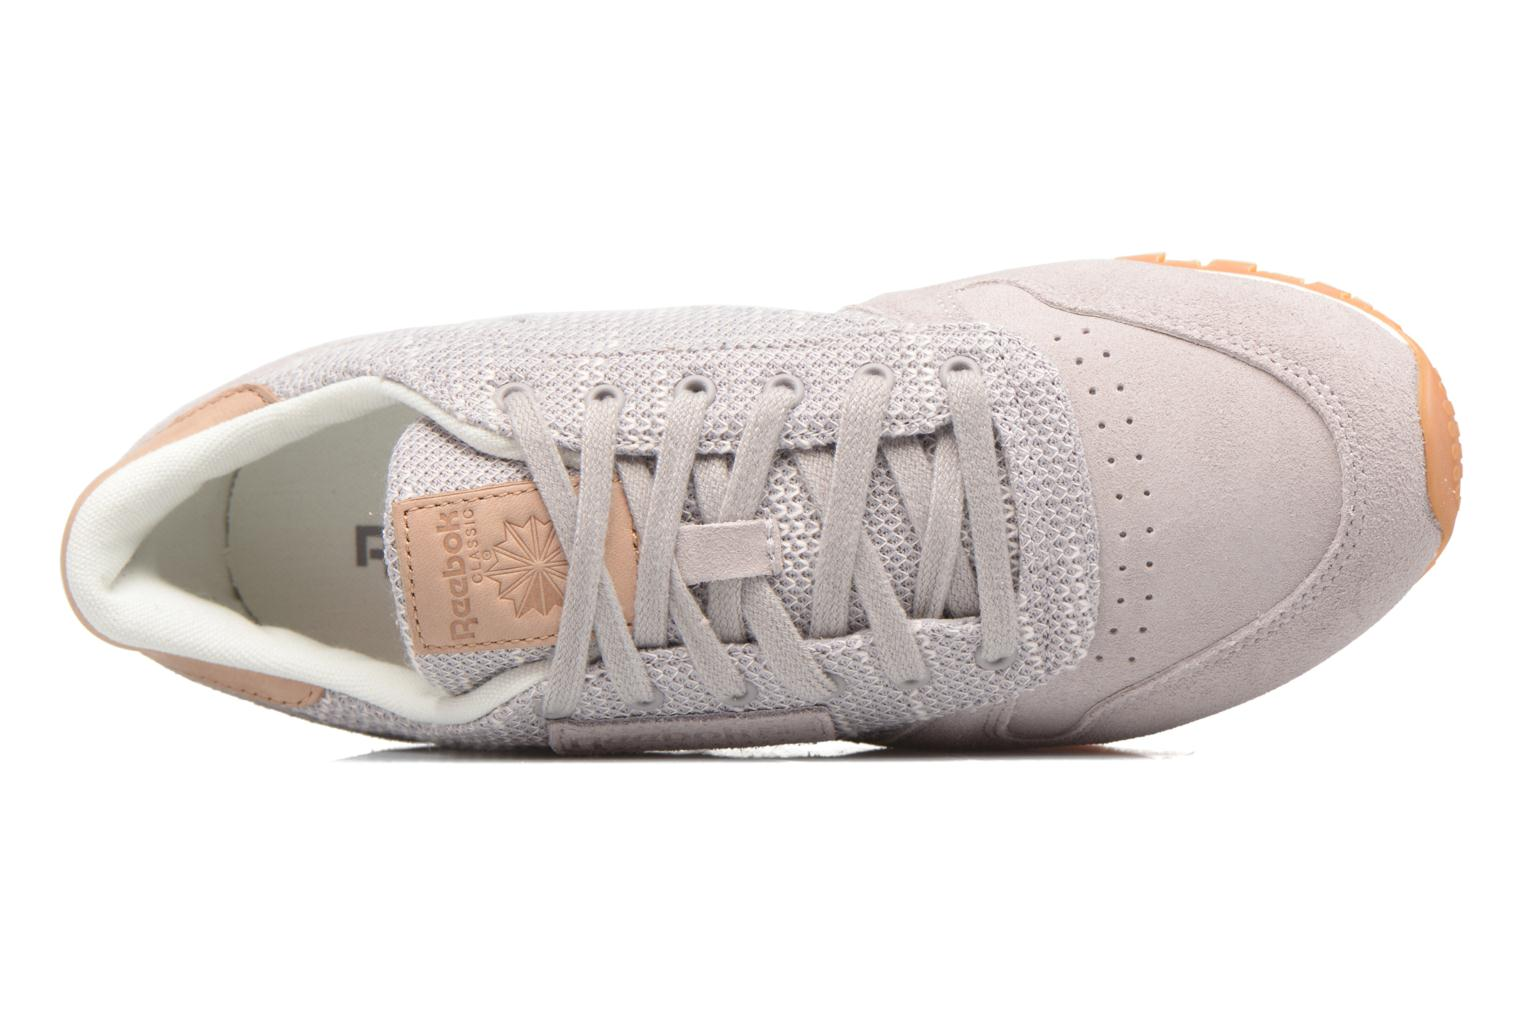 Lilac Cl Reebok Grey Whisper Leather Vegtan Chalk Gum Ash Ebk PHwHY1x